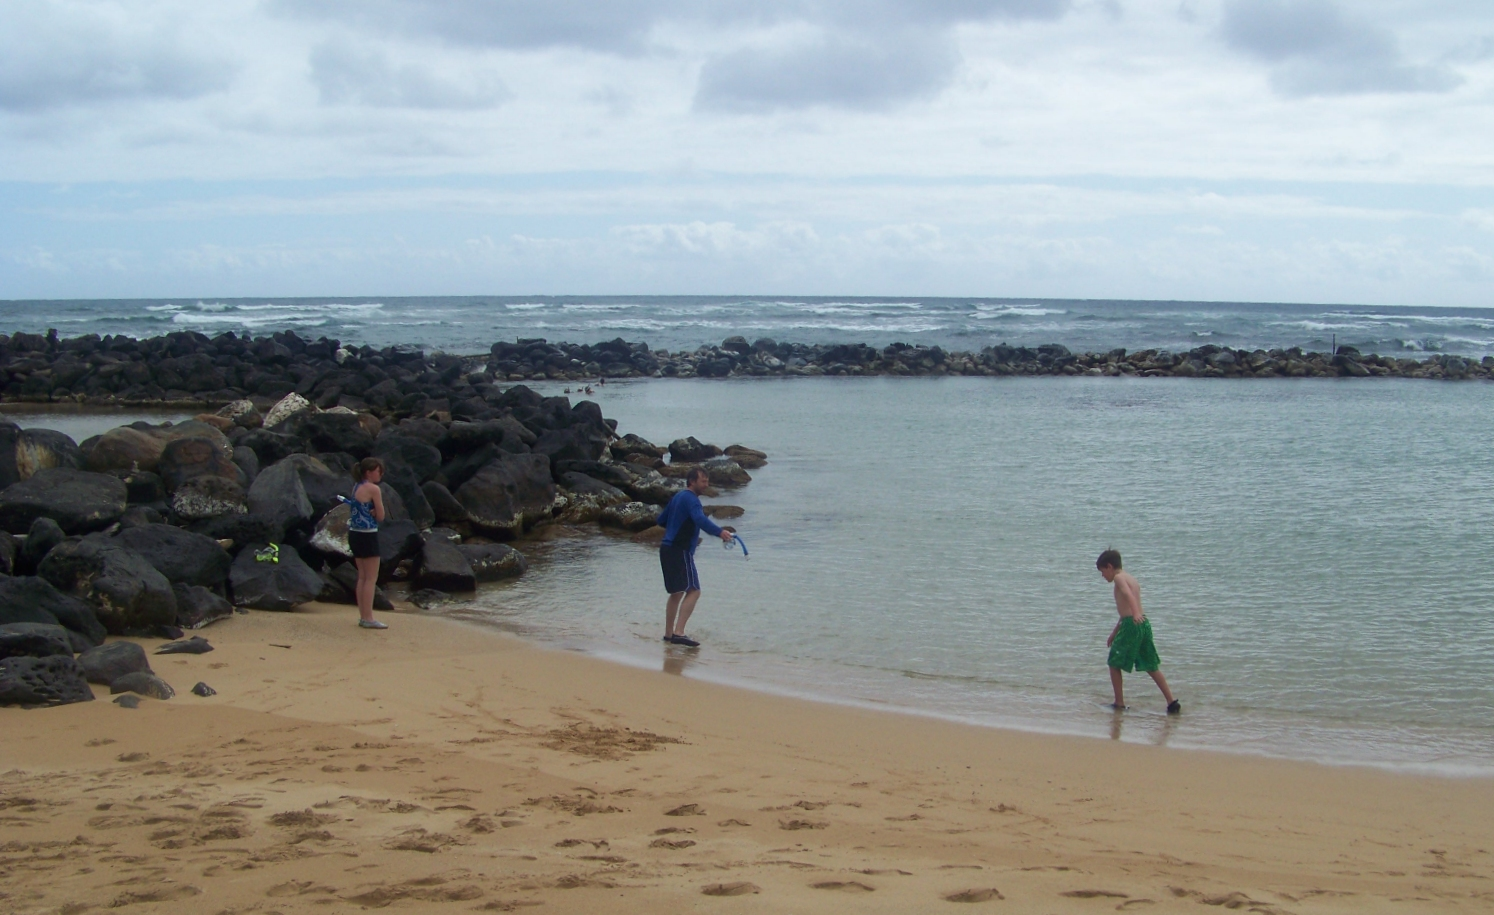 Snorkelling at Lydgate state park in Kauai